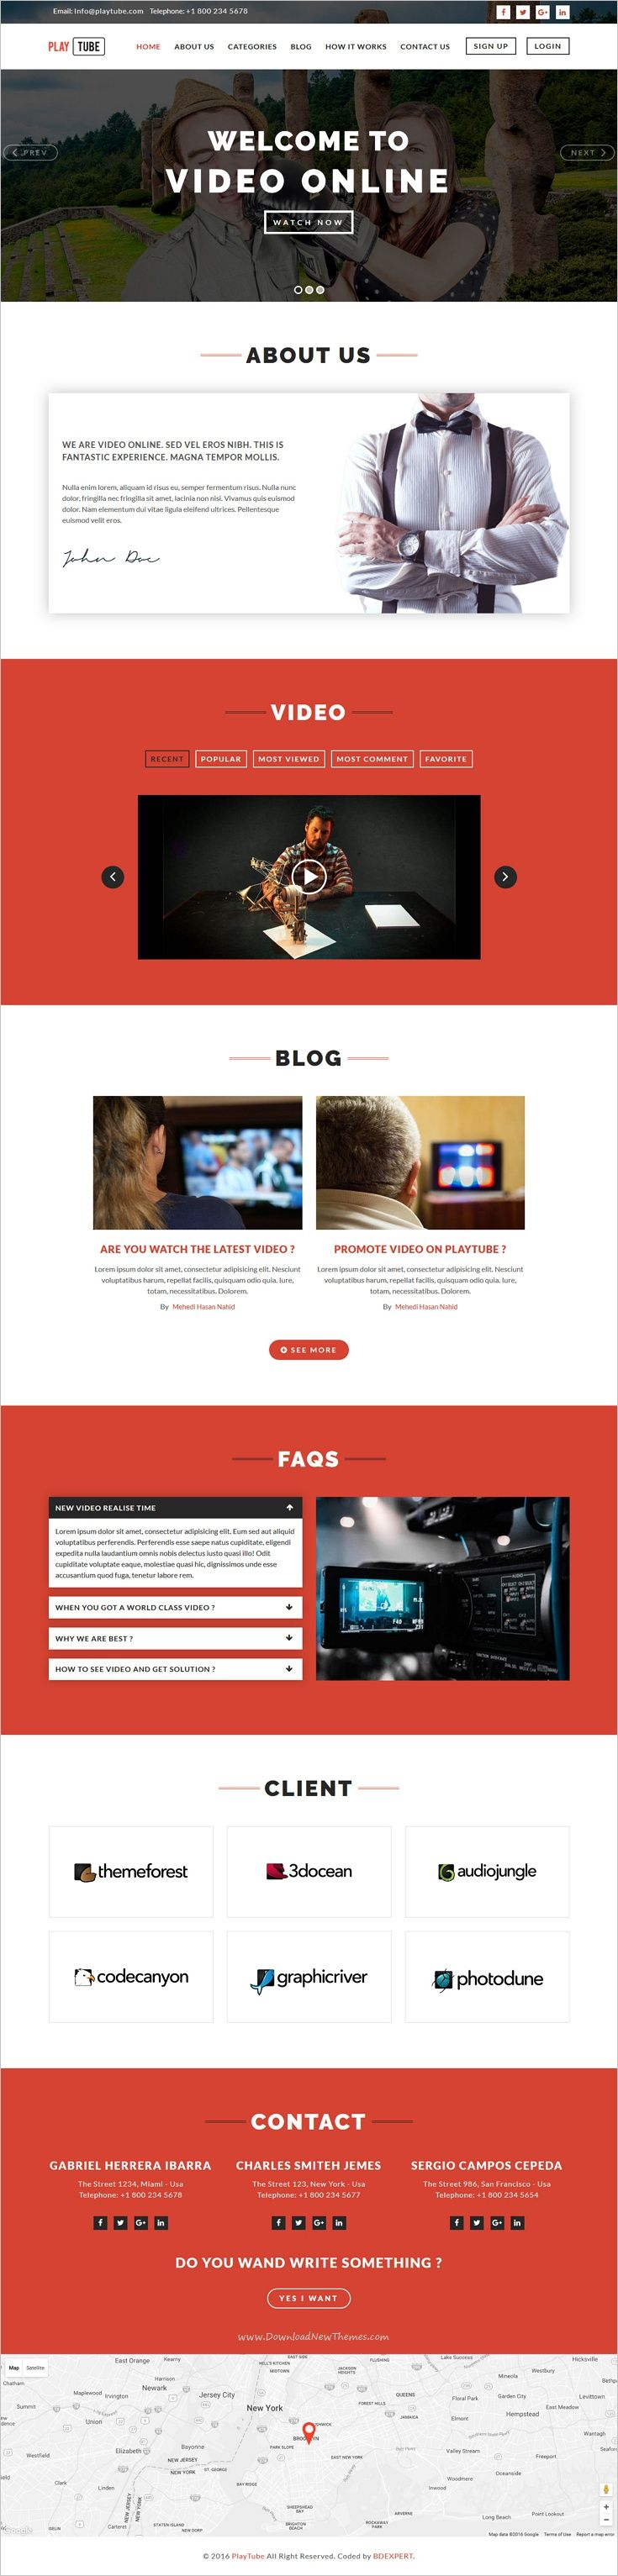 PlayTube is a clean and modern design responsive #HTML #Bootstrap template for #video blog, online live #stream channel or video sharing website download now➩ https://themeforest.net/item/playtube-video-html5-website-template/18948152?ref=Datasata